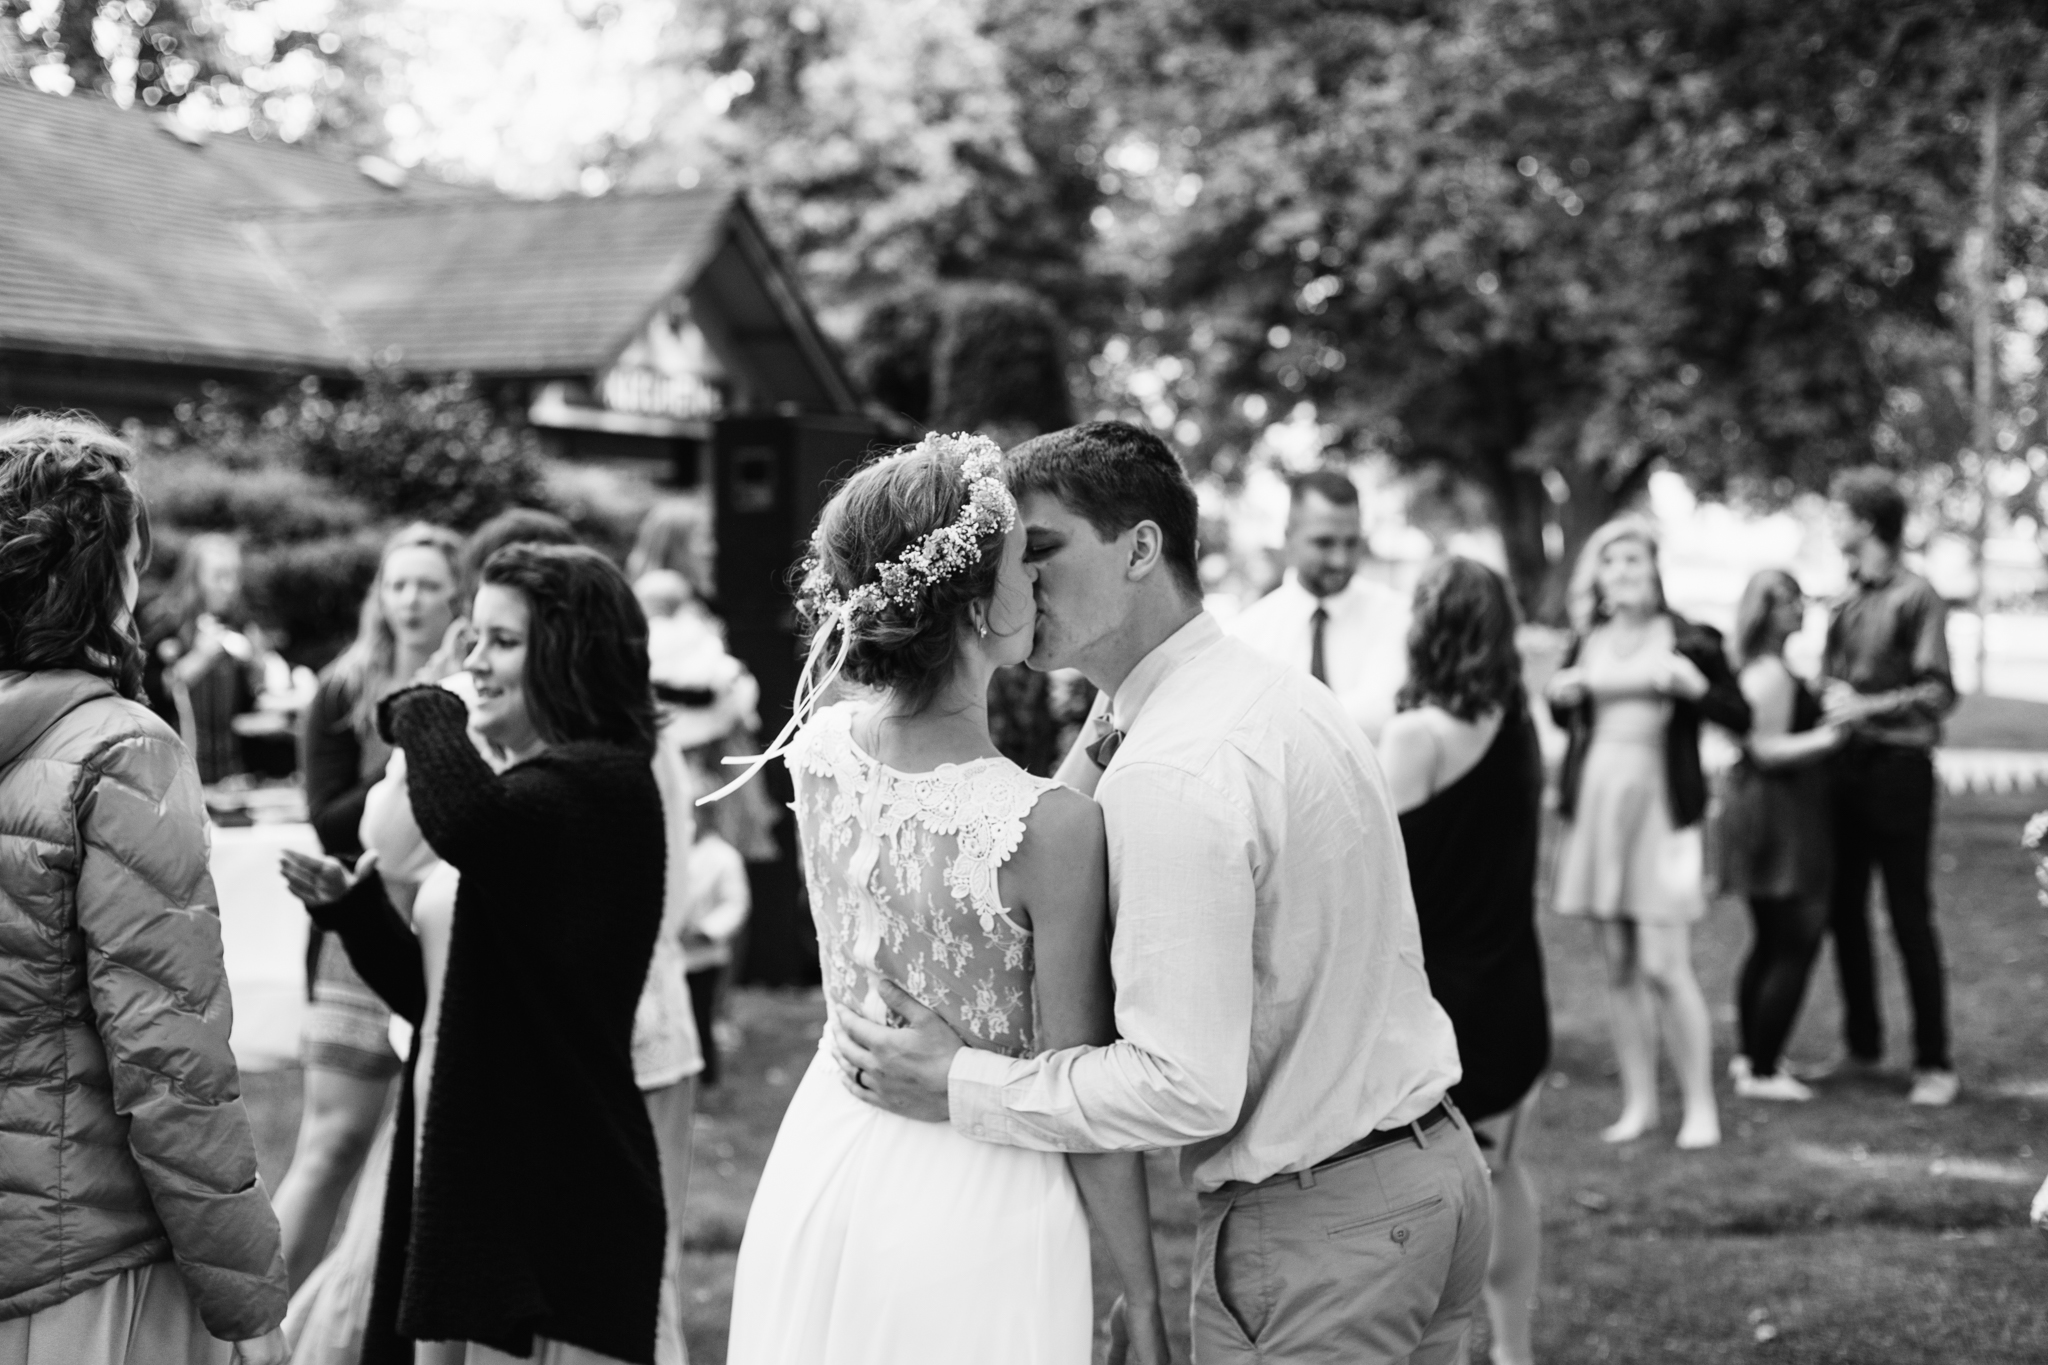 Vancouver Love Story Photographer - Emmy Lou Virginia Photography-68.jpg